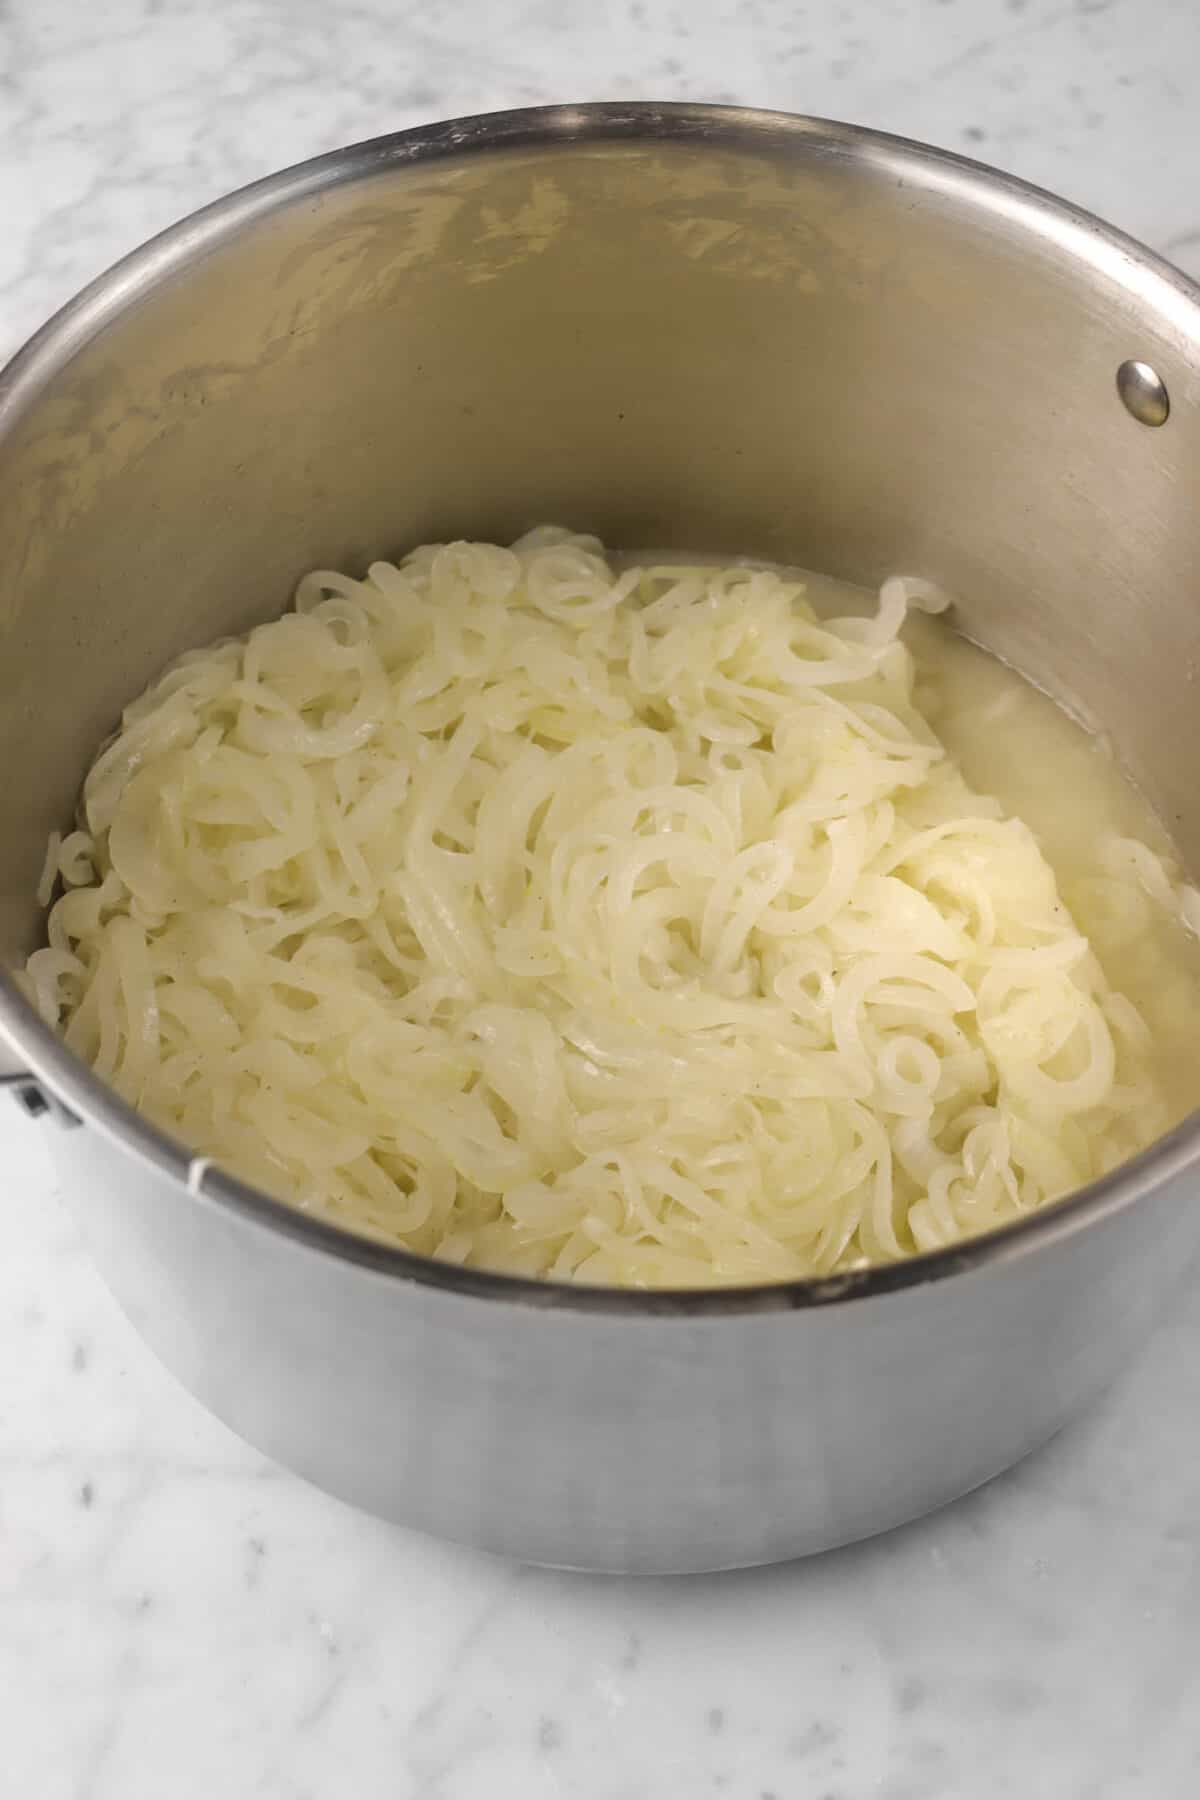 onions cooked down in a large pot with white wine added